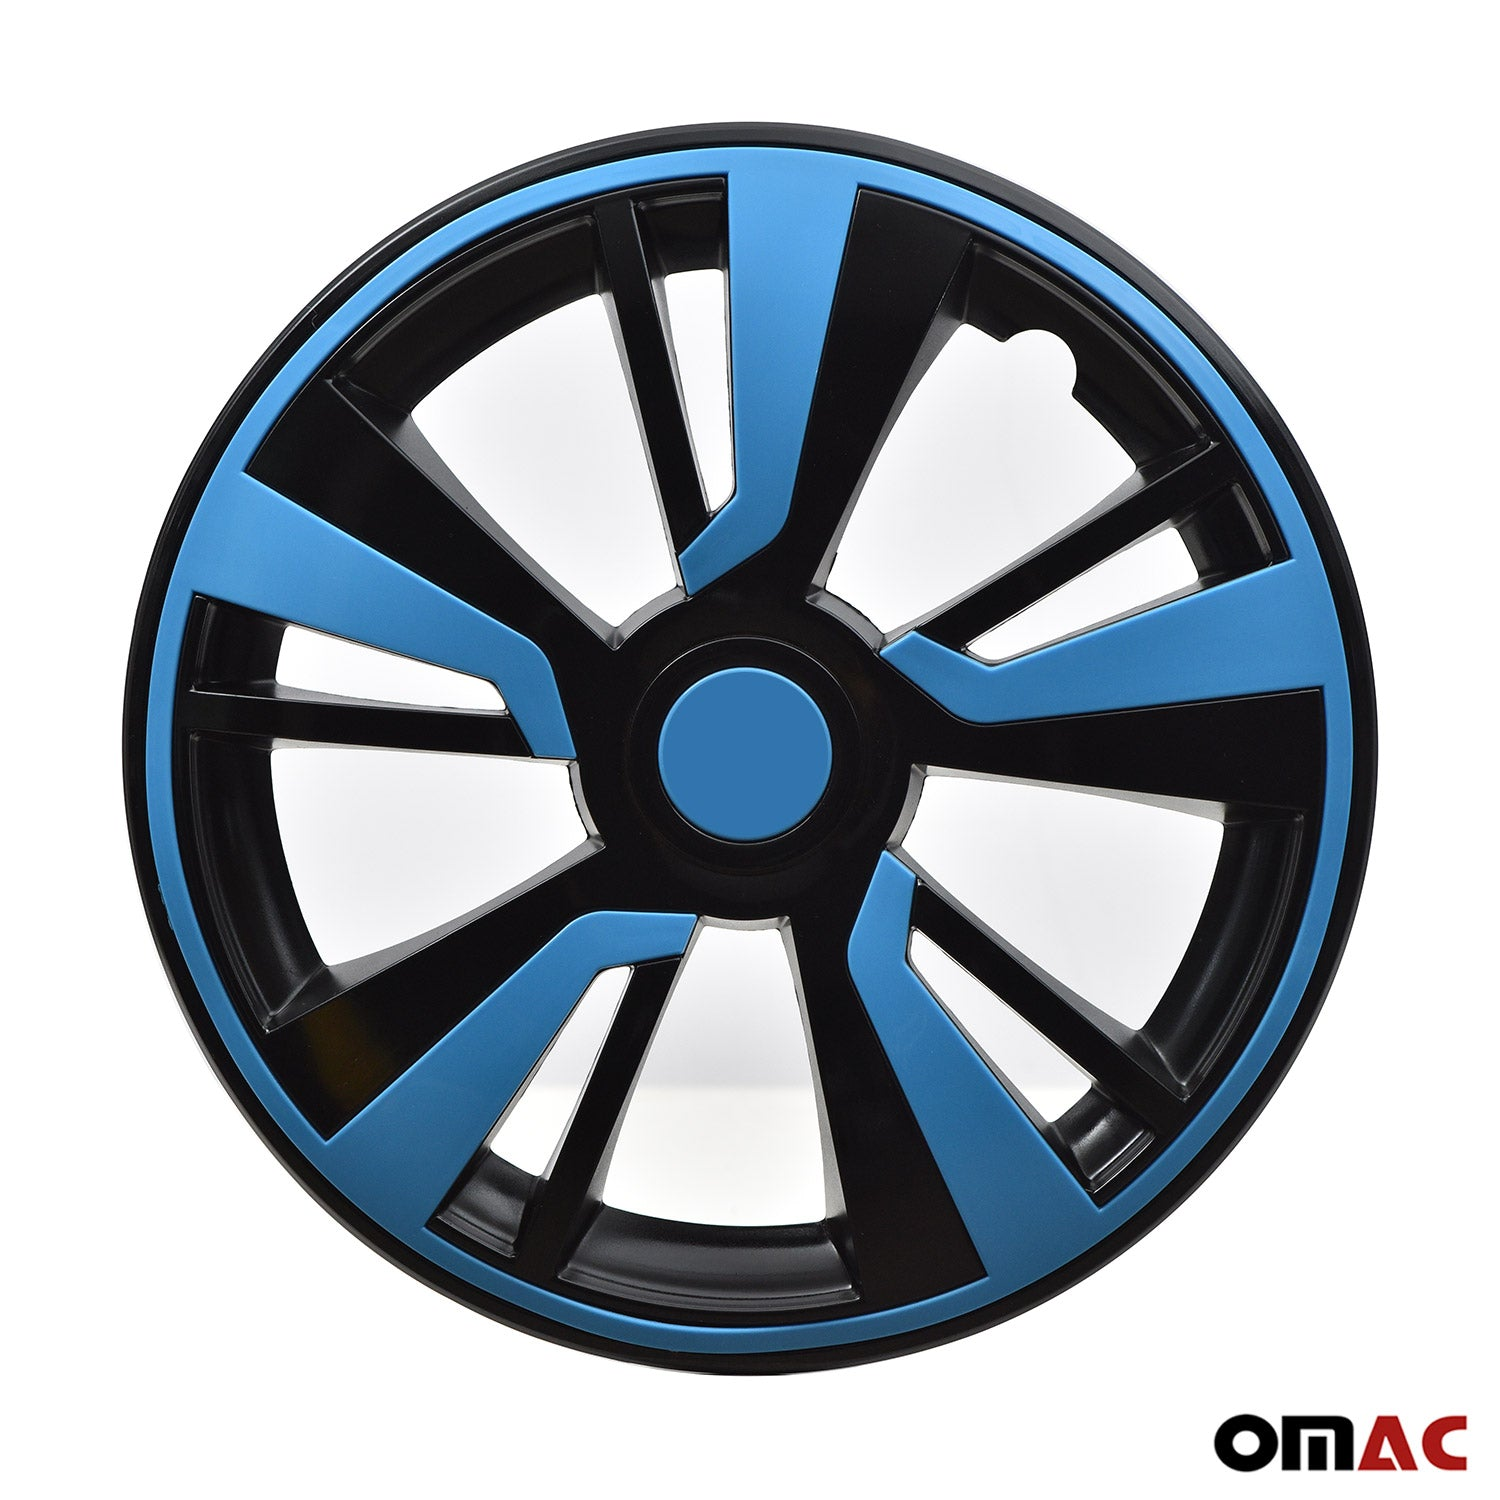 15'' Hubcaps Wheel Rim Cover Black with Blue Insert 4pcs Set For Mazda